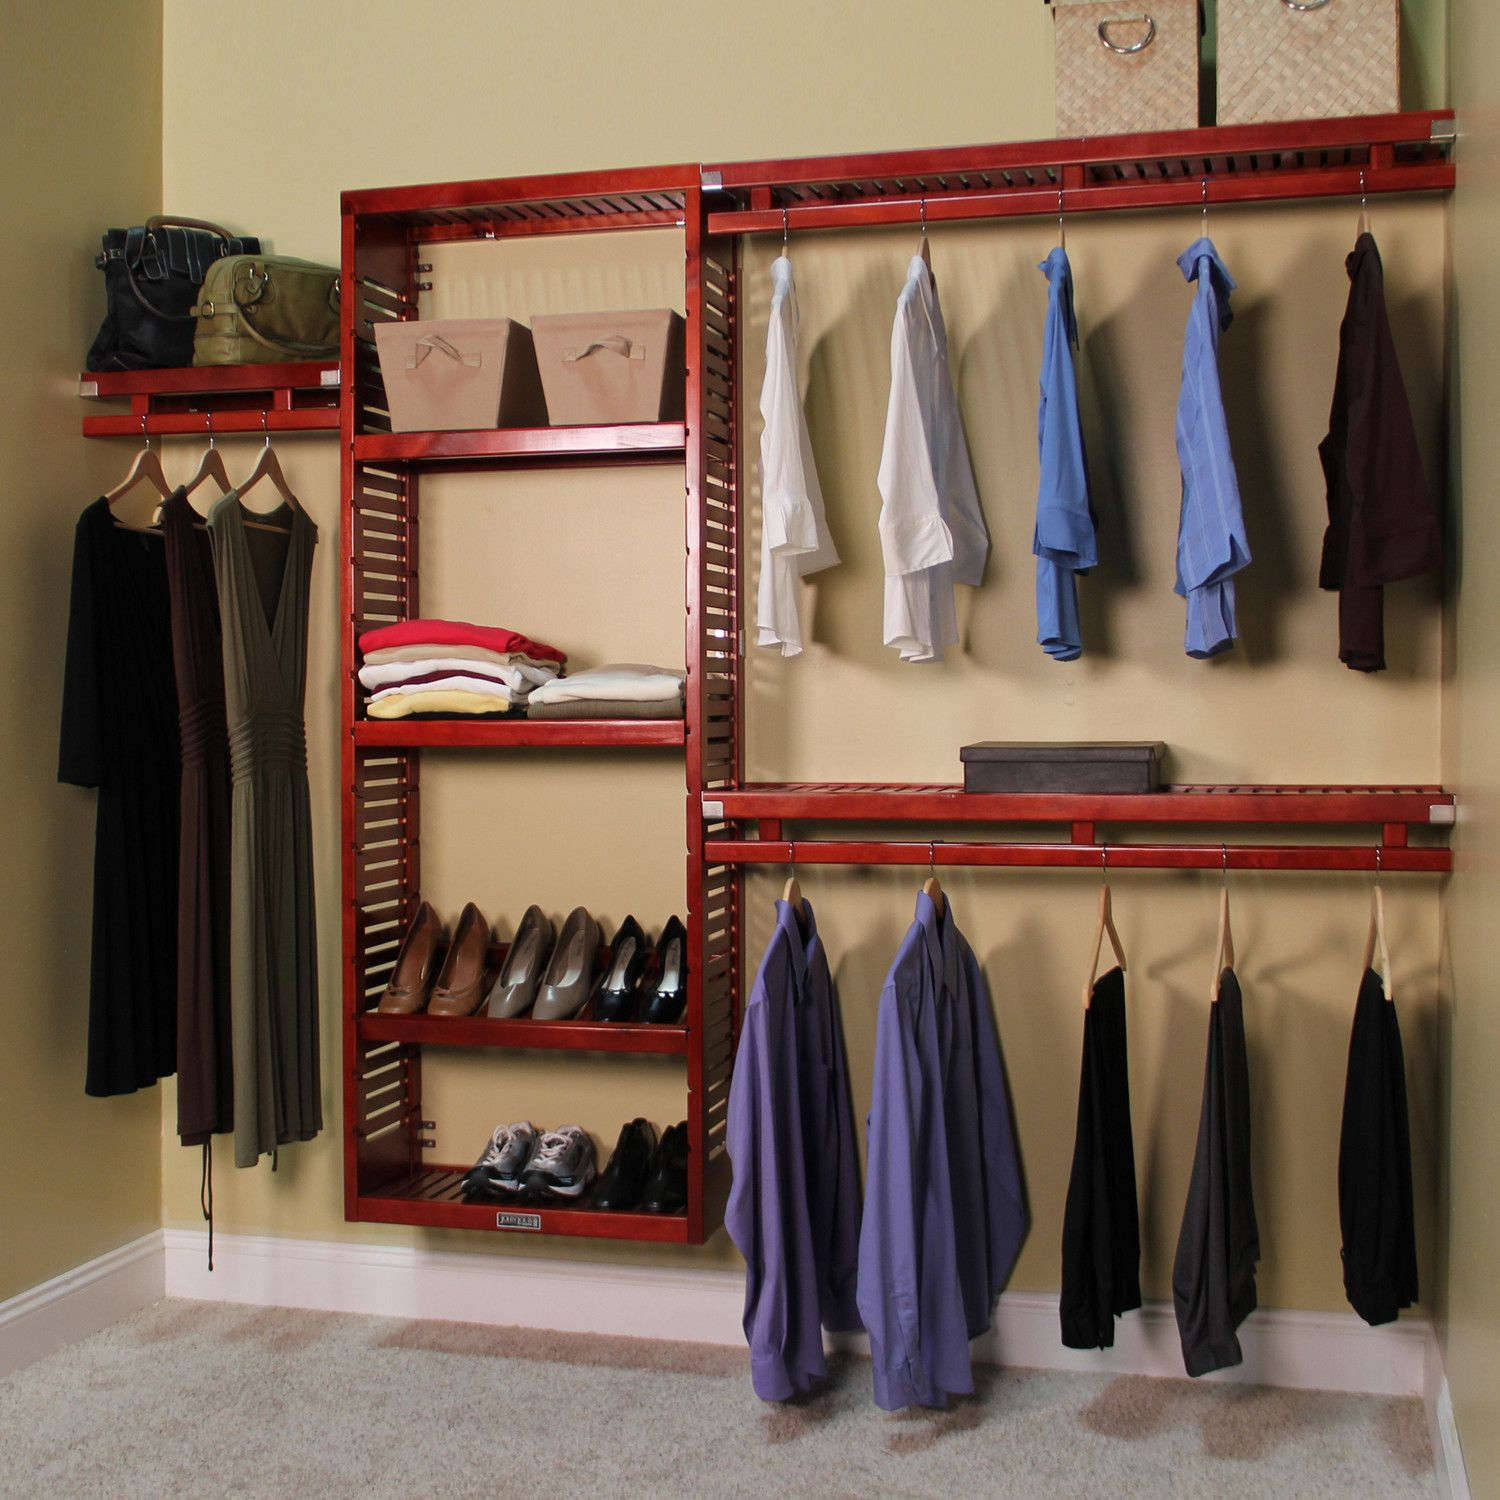 deep nice and i in decoration organizers roth gallery ideas for latest a with how is home walk organizer wooden clothes brown shelves allen has unnamed hanging file closet lowes